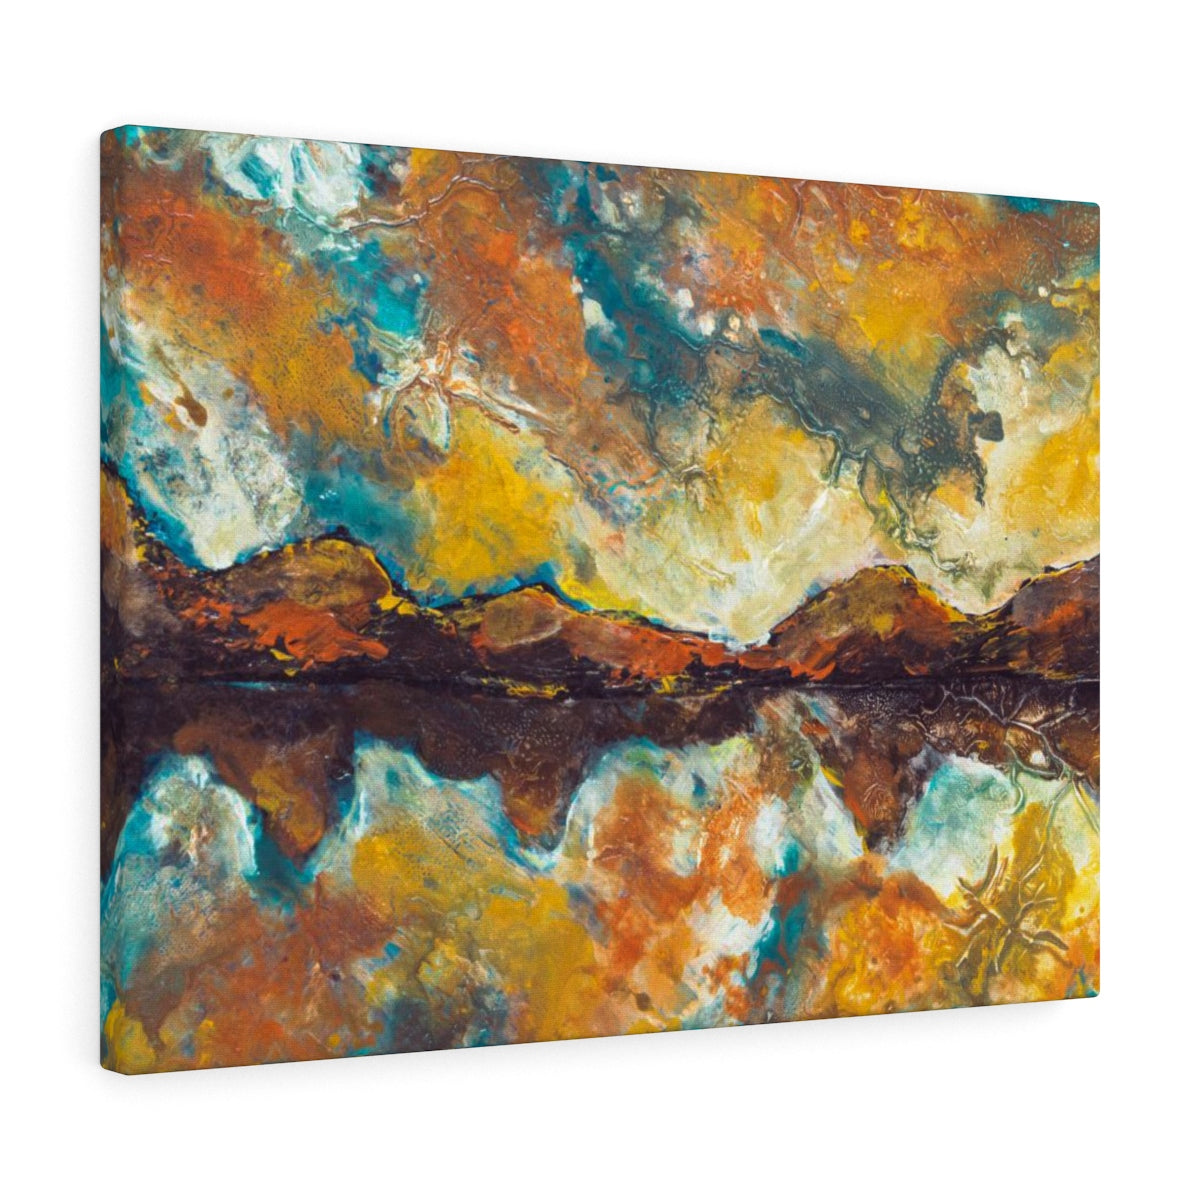 Landscape Painting Canvas Art - Inspired Scenic Home Decor | Brandless Artist